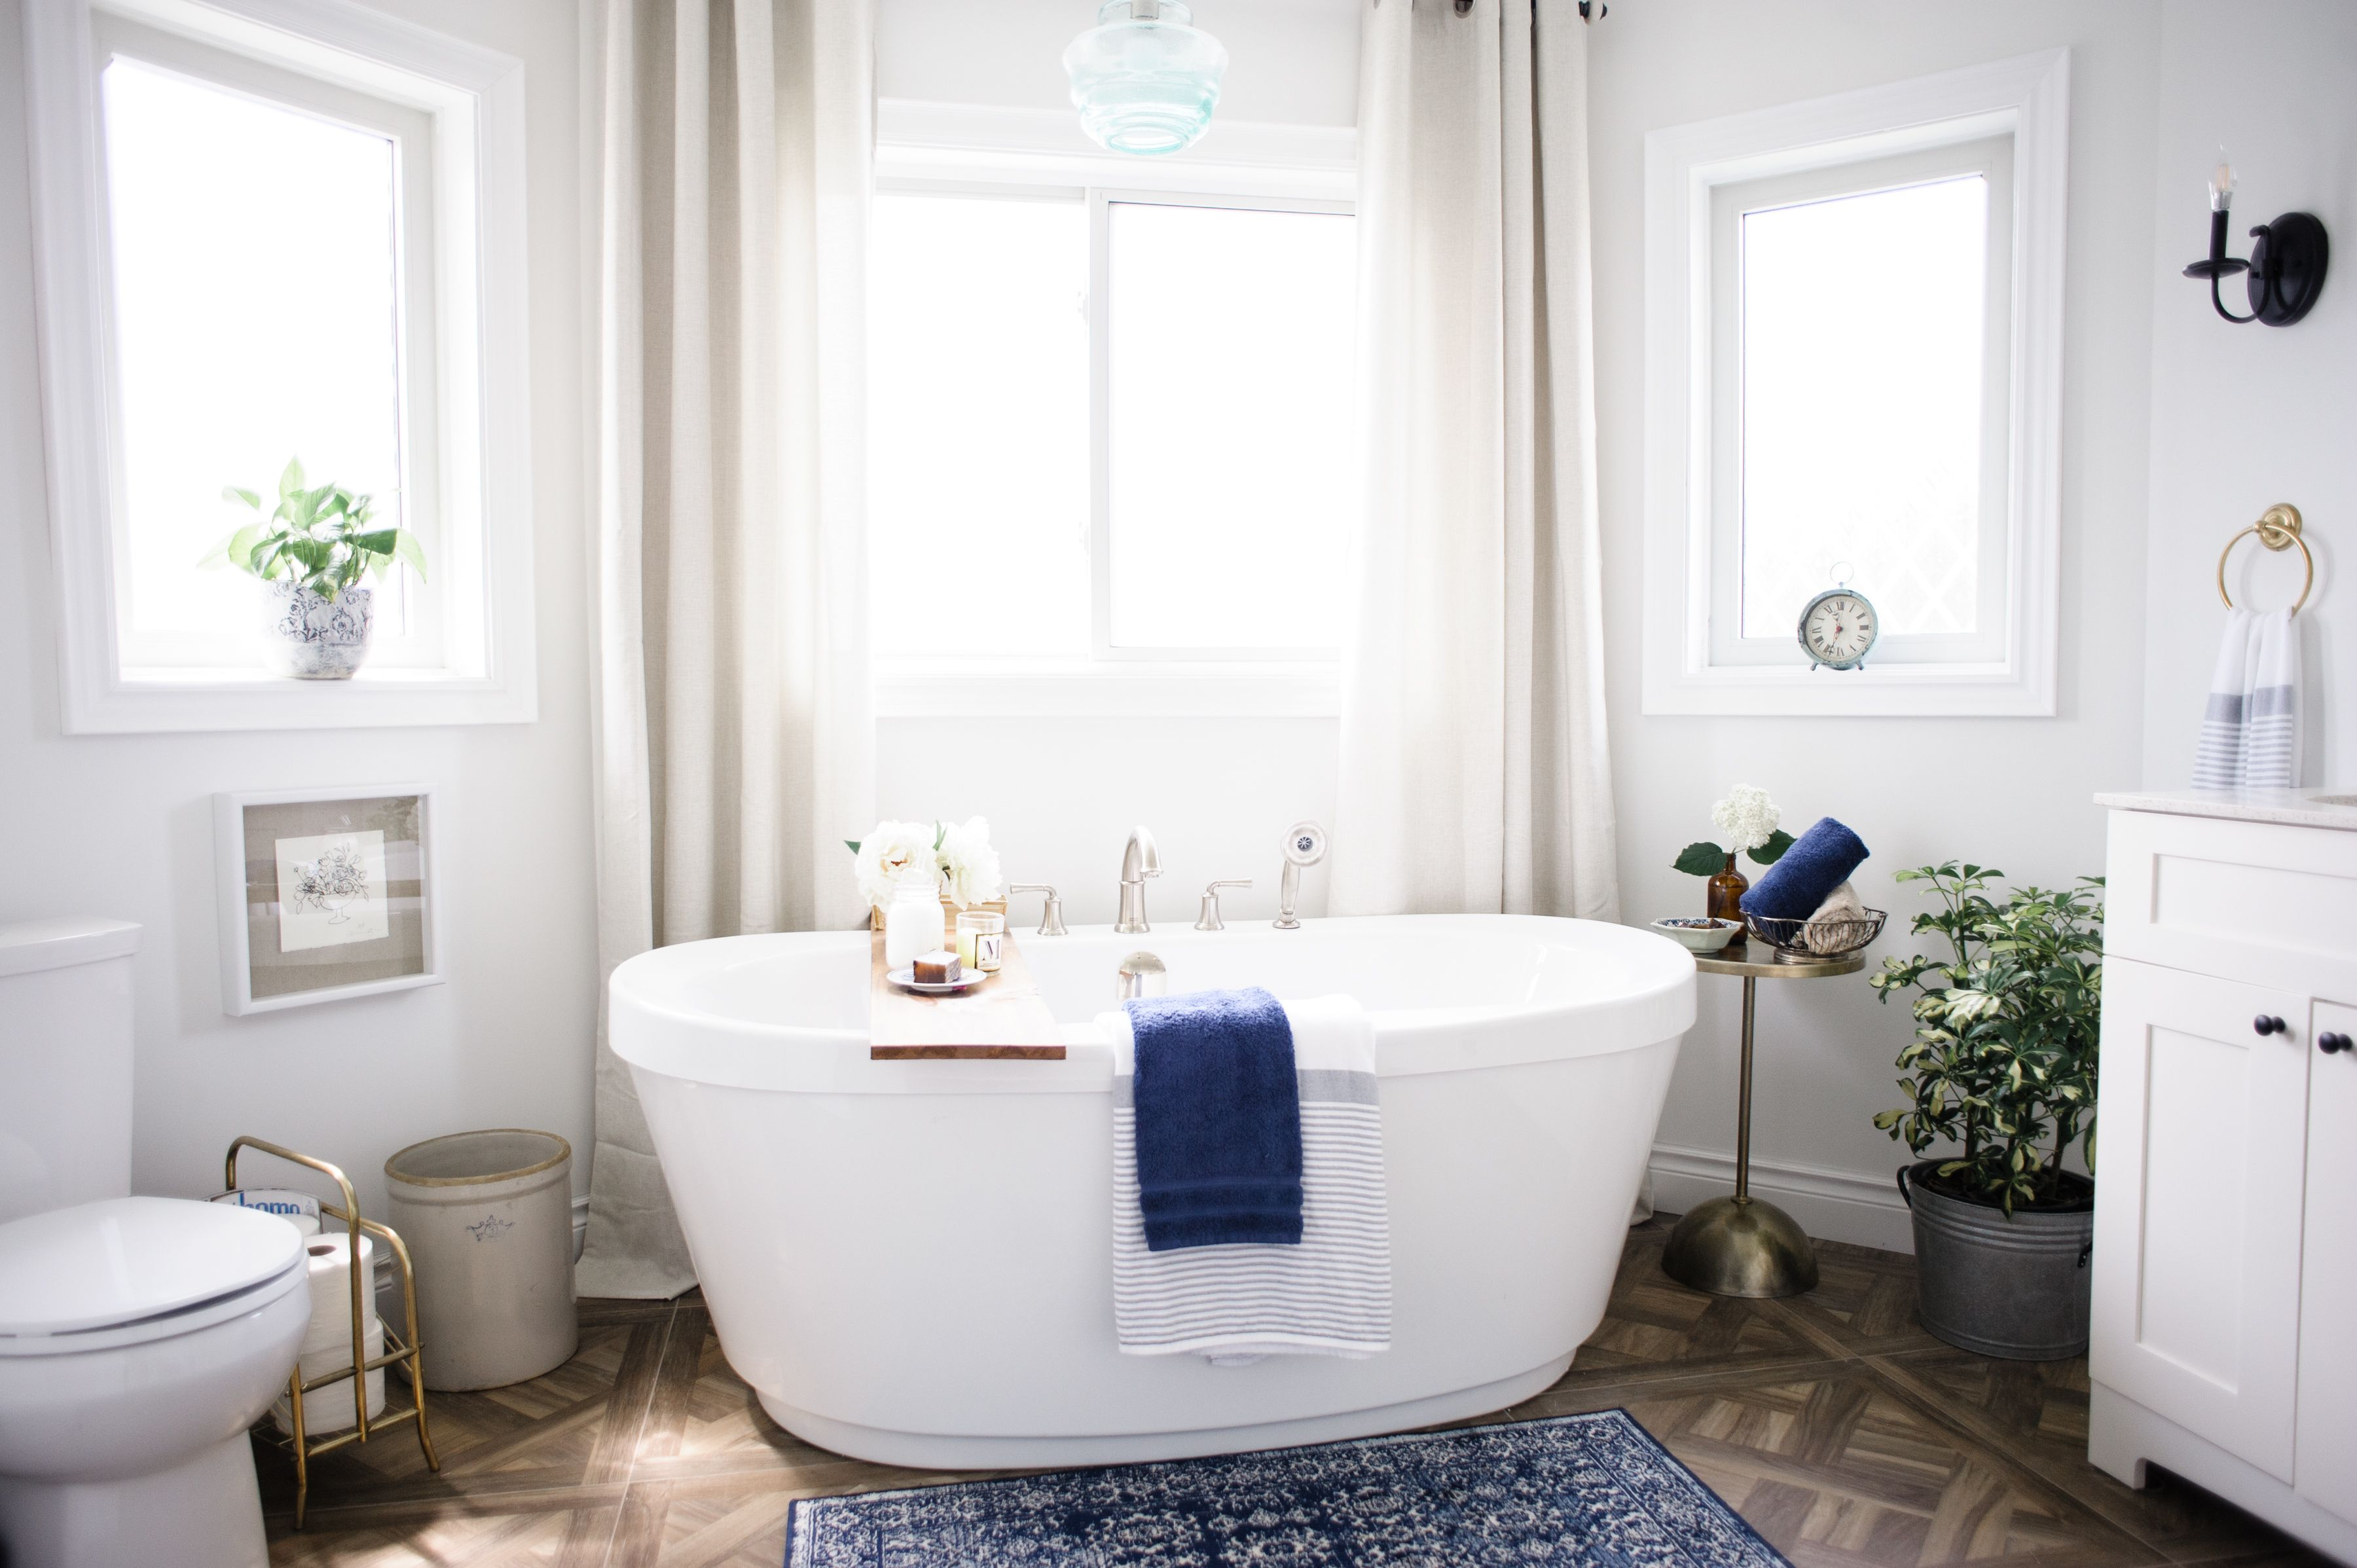 Forget netflix this master bath is all about bubbles wine and